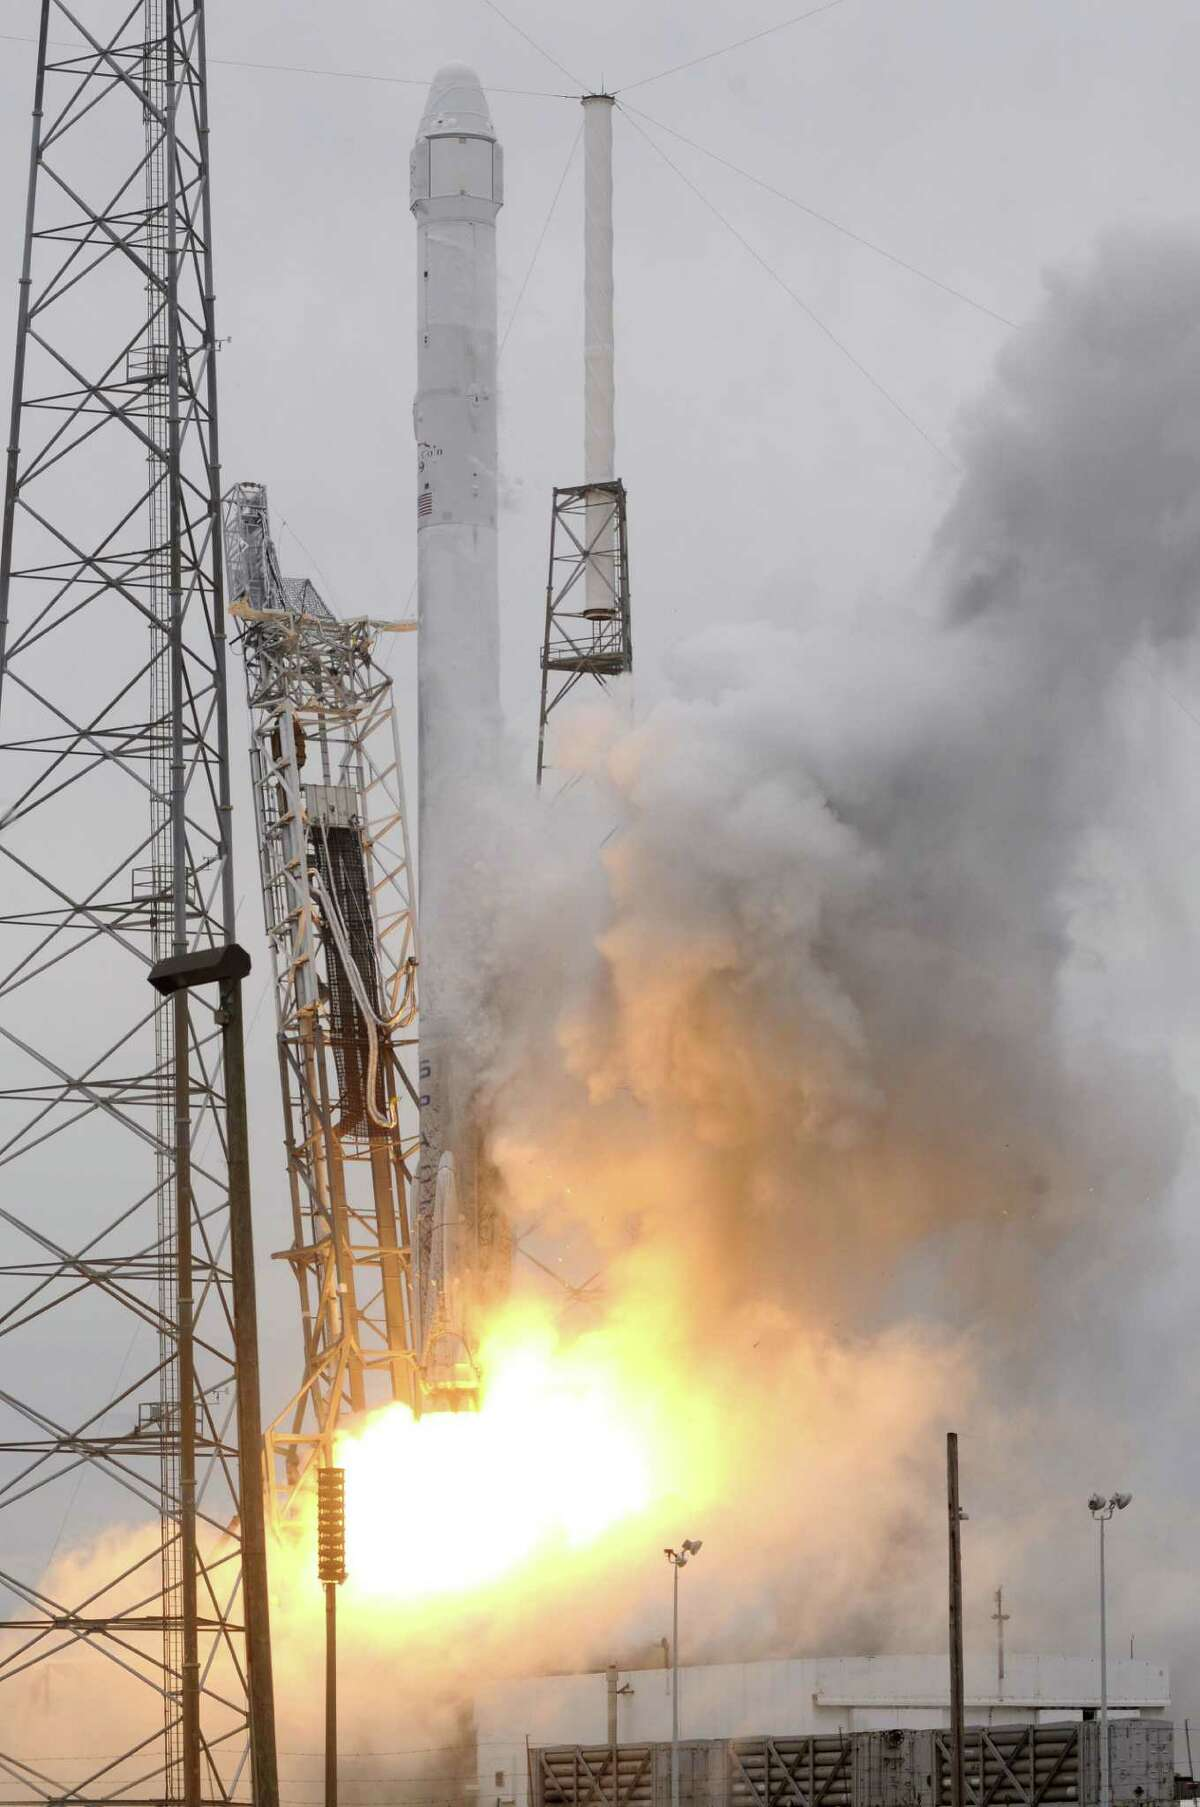 Space X's Falcon 9 rocket lifts off from Cape Canaveral, Florida on April 18, 2014 carrying its Dragon CRS3 spacecraft on a resupply mission to the International Space Station (ISS). Private US firm SpaceX launched its unmanned Dragon capsule to the International Space Station on April 18, 2014, its third trip carrying supplies and equipment to the orbiting lab. After three earlier delays, the Falcon 9 rocket and its Dragon capsule finally blasted off as planned at 3:25 pm (1925 GMT) from Cape Canaveral in Florida. AFP PHOTO / Bruce WeaverBRUCE WEAVER/AFP/Getty Images